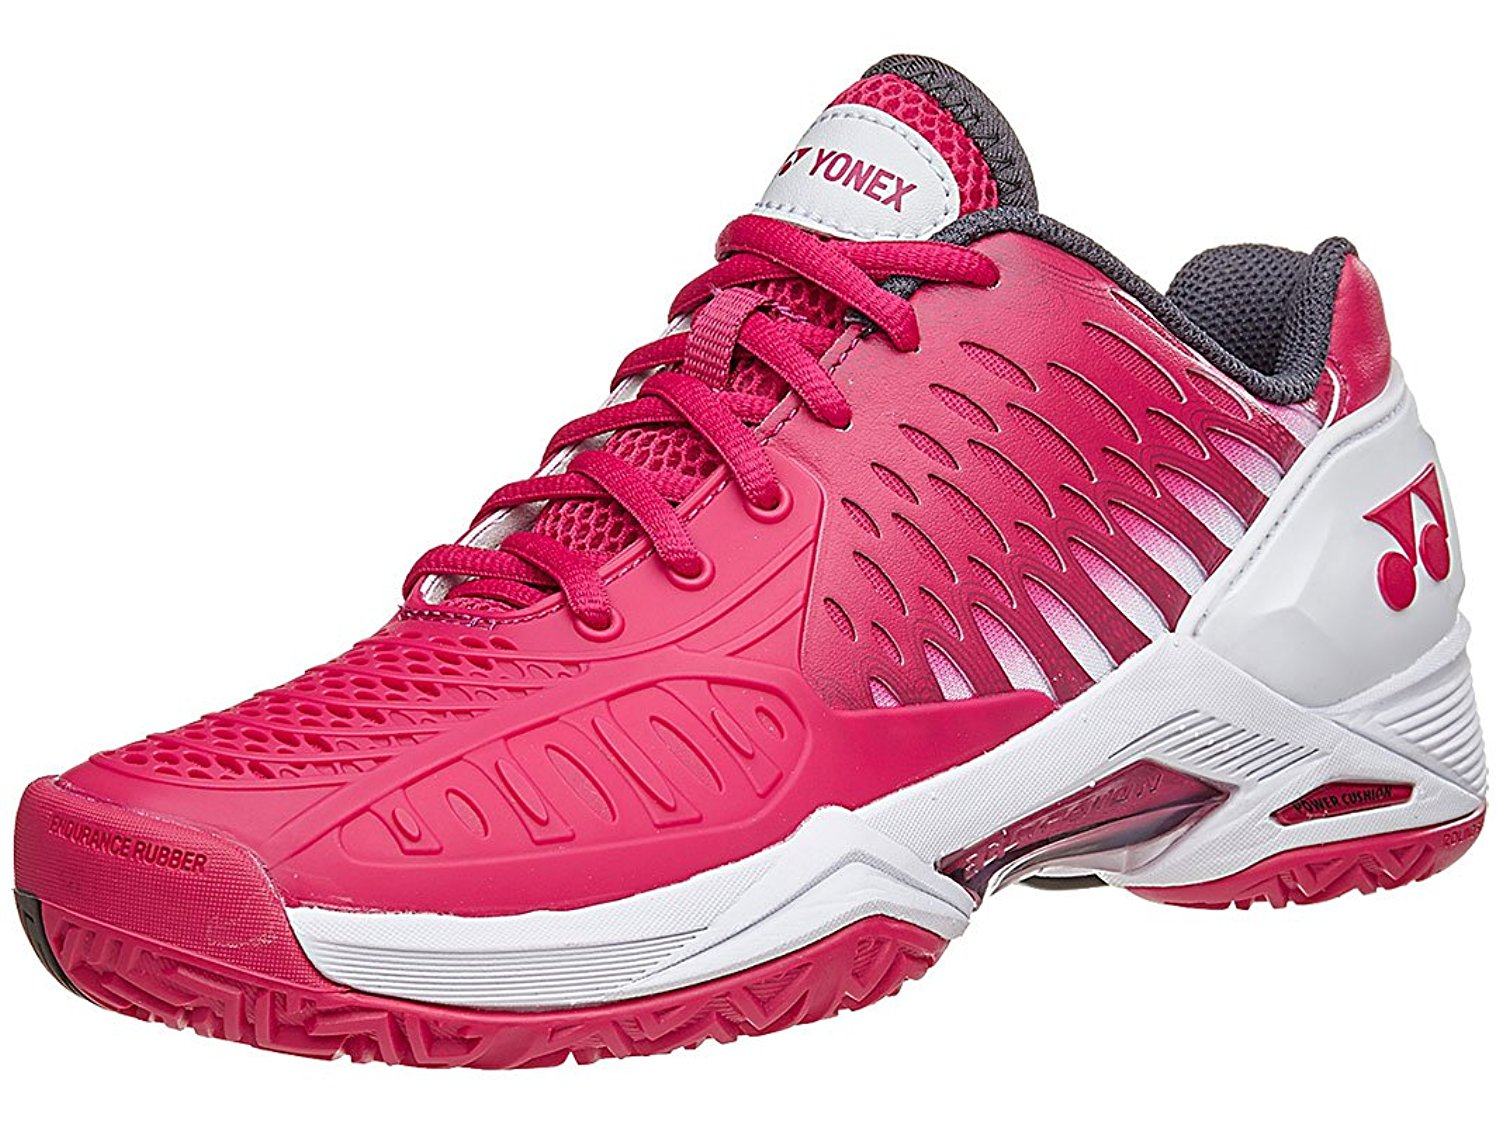 Yonex Power Cushion Eclipsion All Court Women's Tennis Shoe, Dark Pink